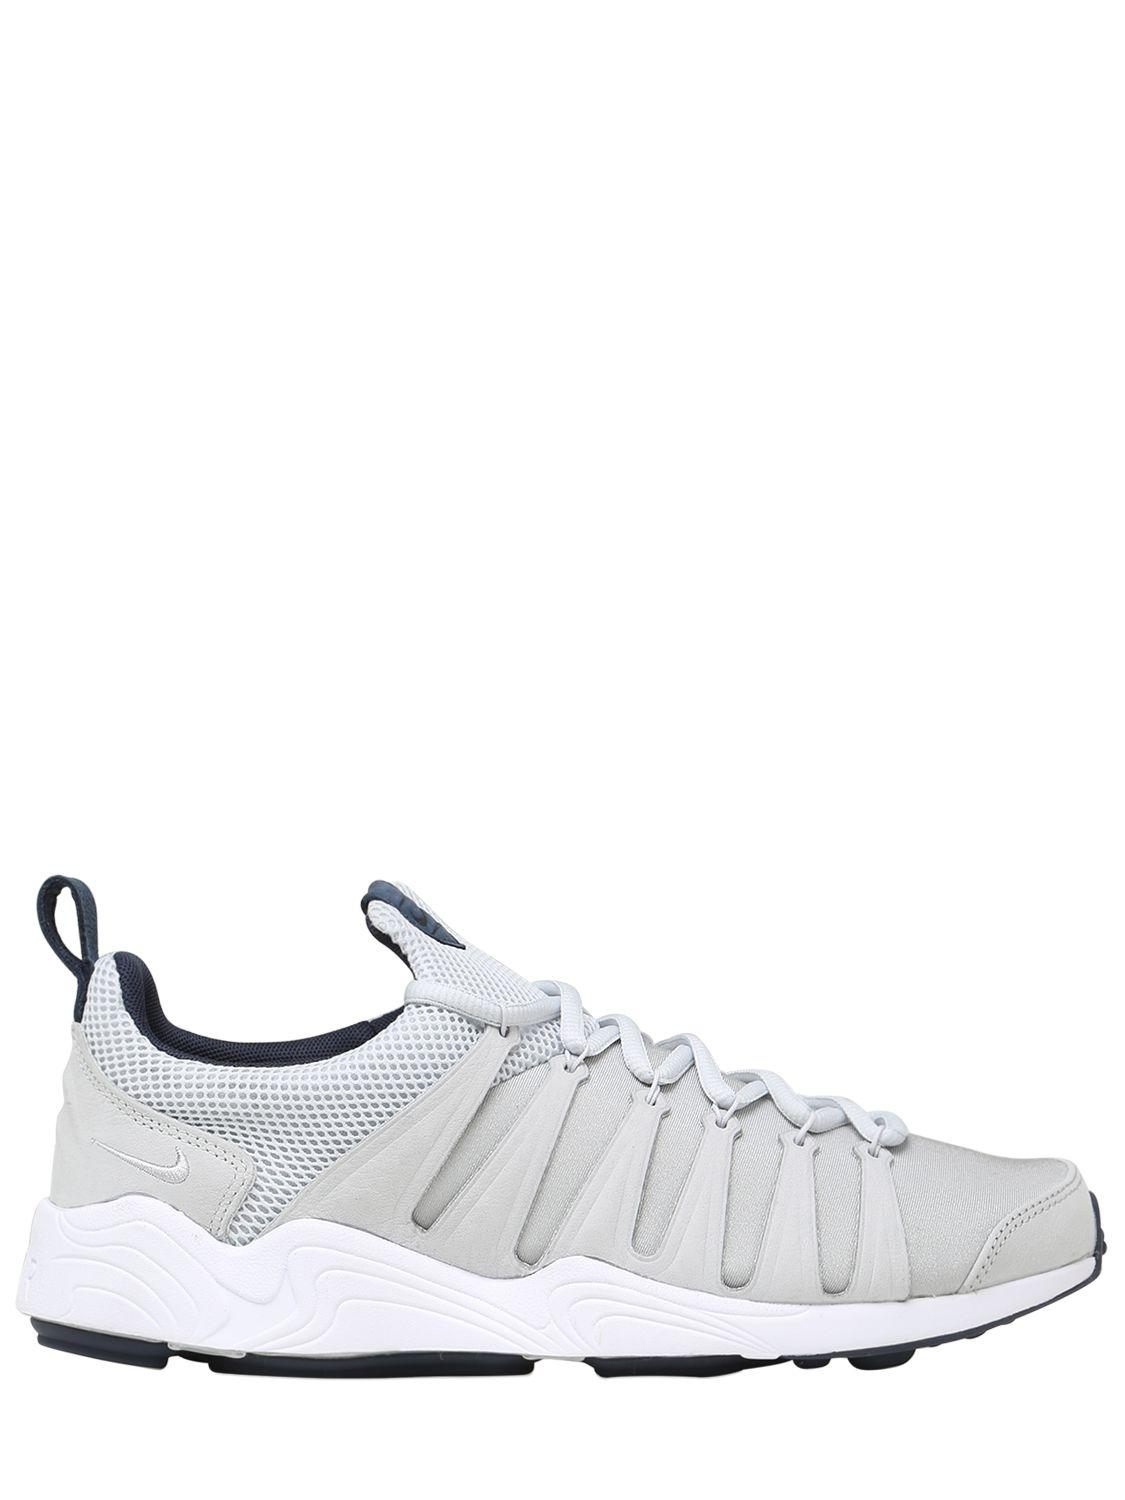 b0e02165a814 Lyst - Nike Lab Air Zoom Spirimic Sneakers in White for Men